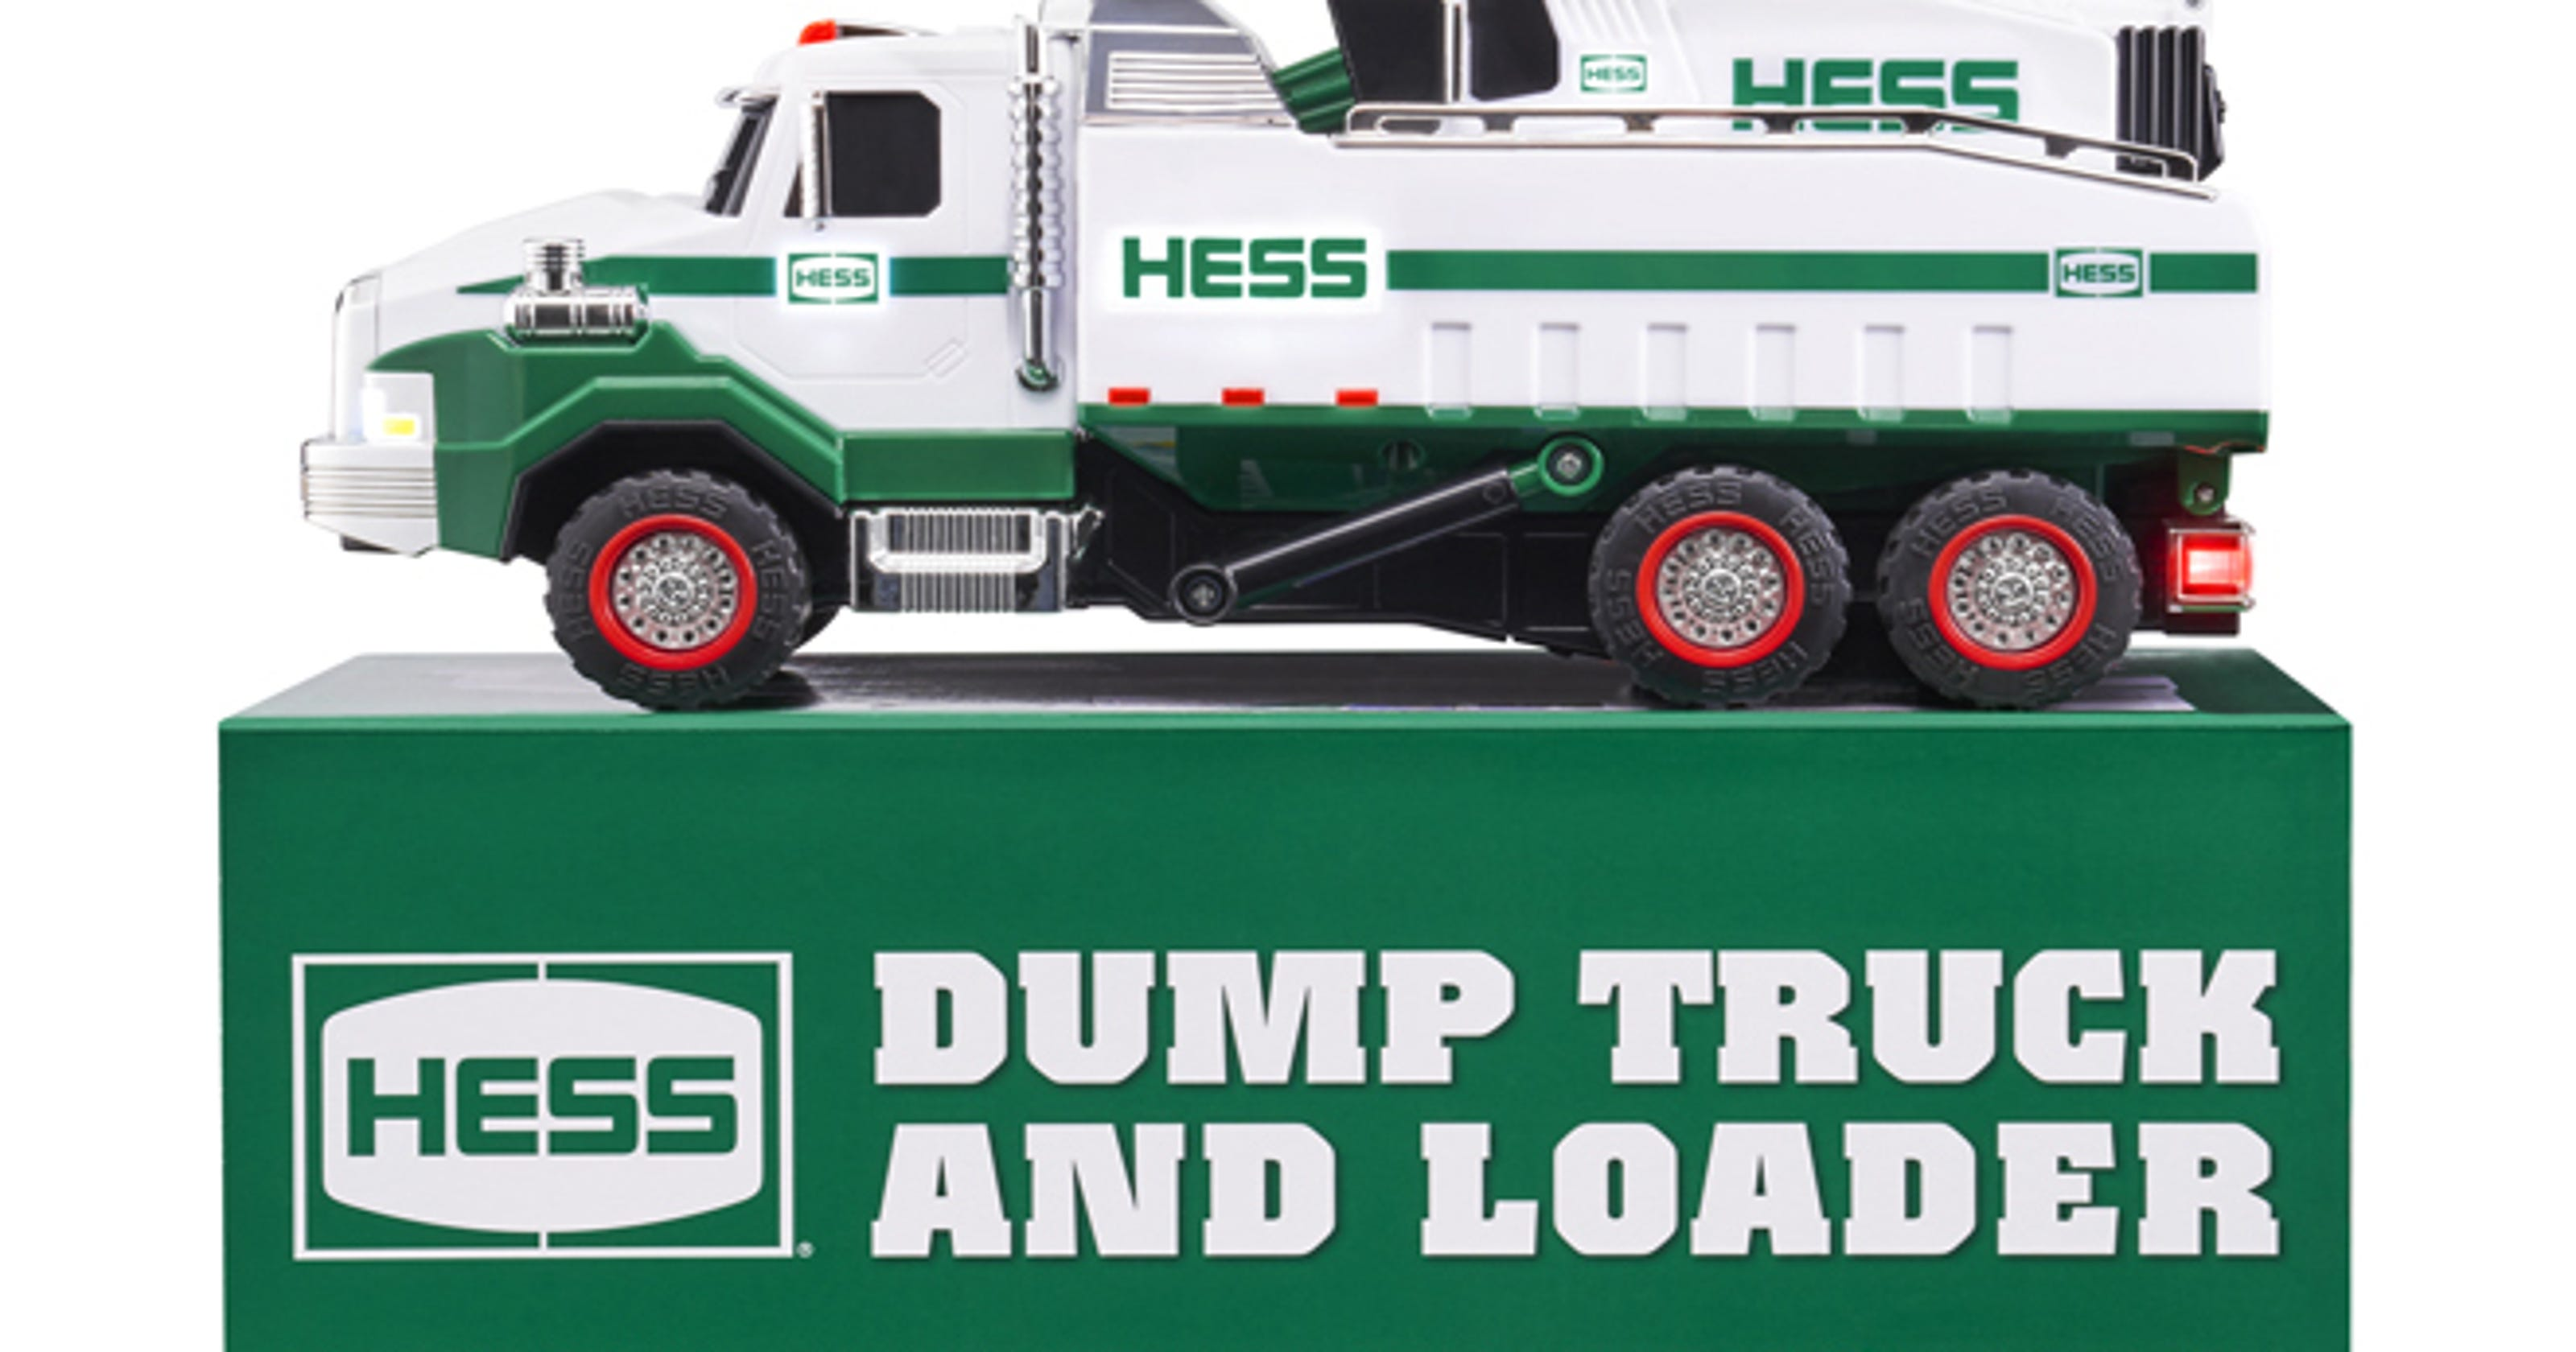 this year s holiday hess truck comes loaded with stem curriculum